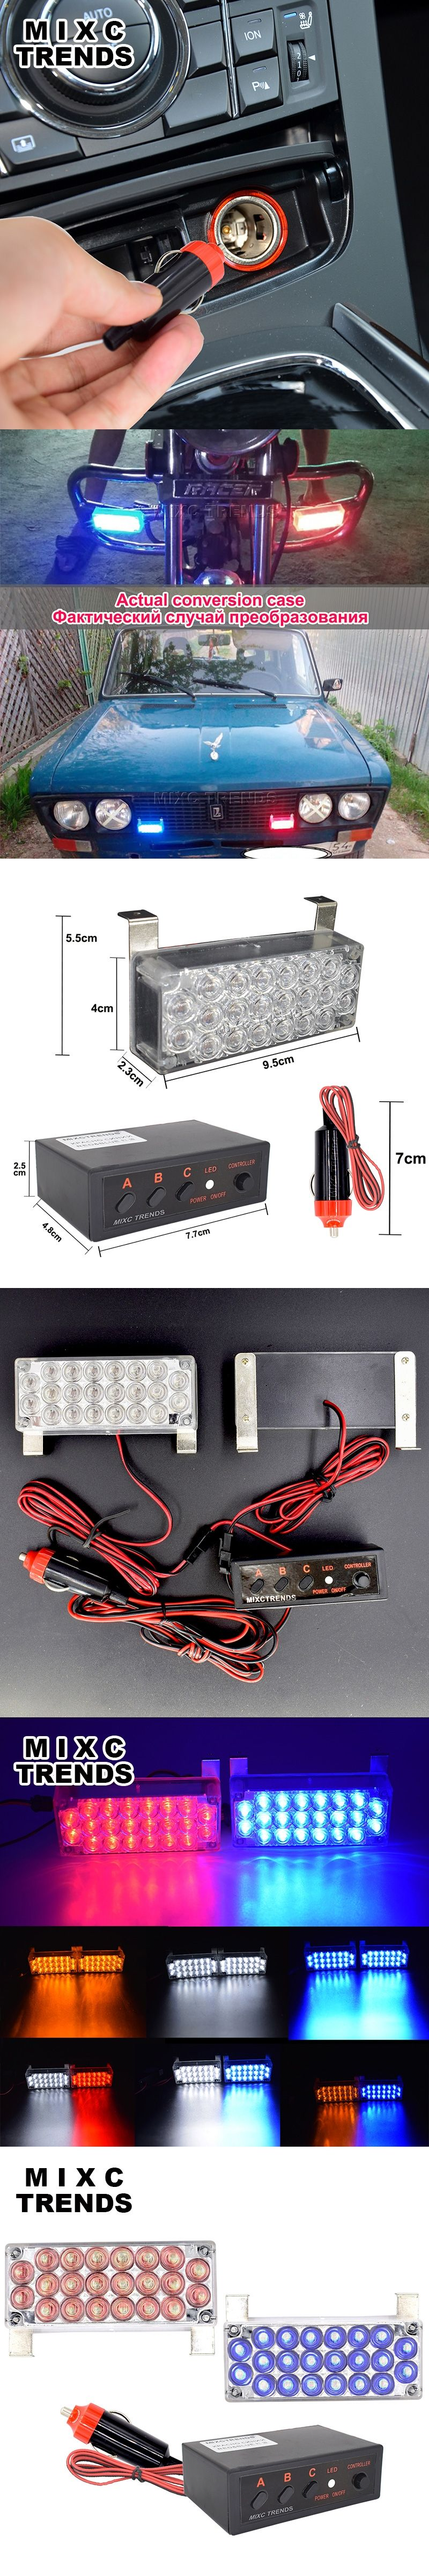 Mixc Trends 2x22 Led Police Strobe Beacon Light Powerd By Cigarette Wiring Emergency Vehicle Lights Lighter 12v Drl